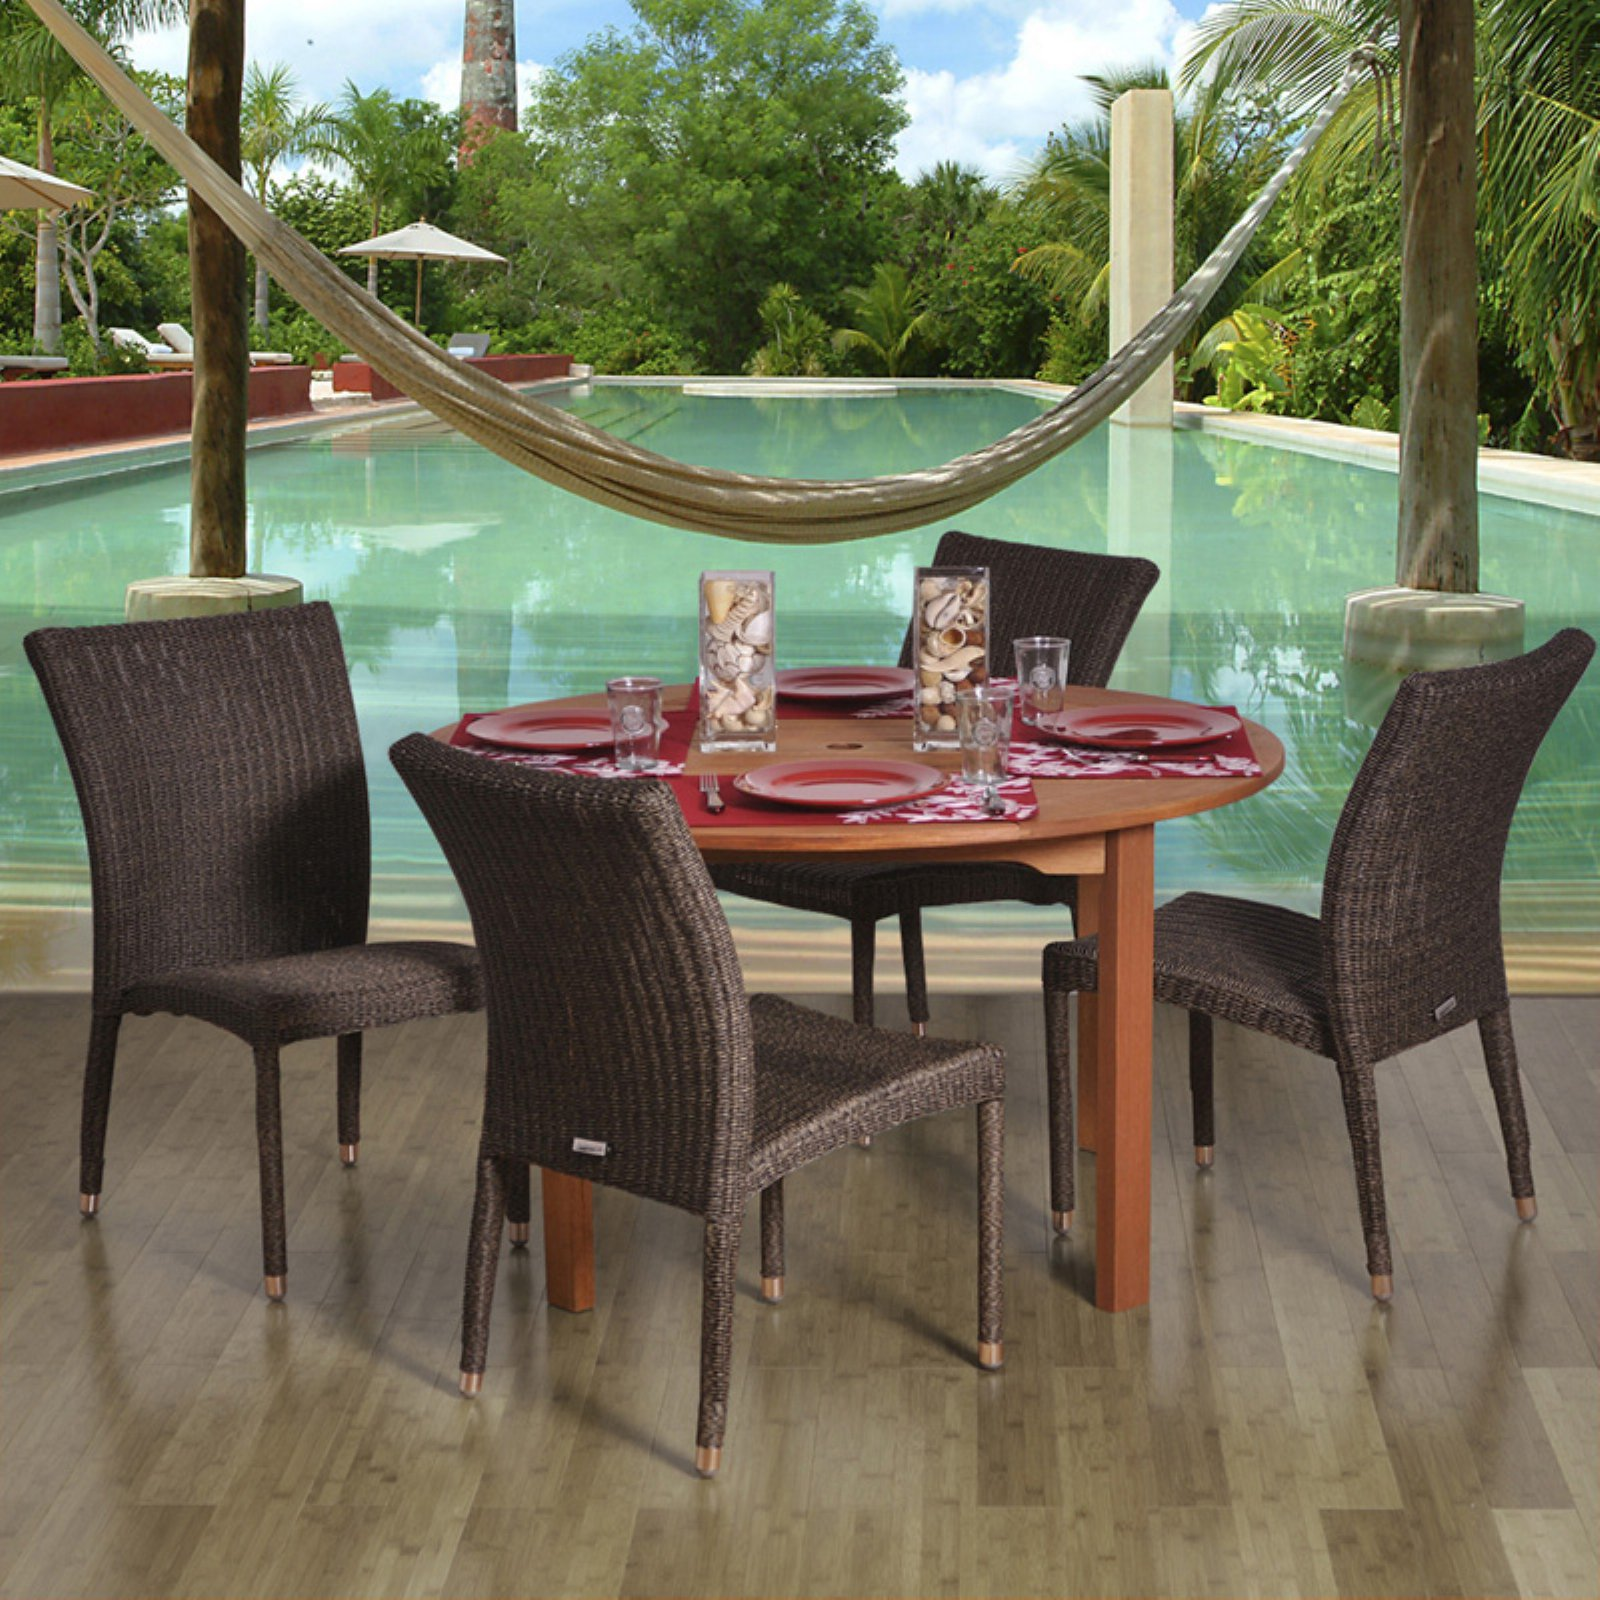 Amazonia Lorraine Round All Weather Wicker Dining Set - Seats 4